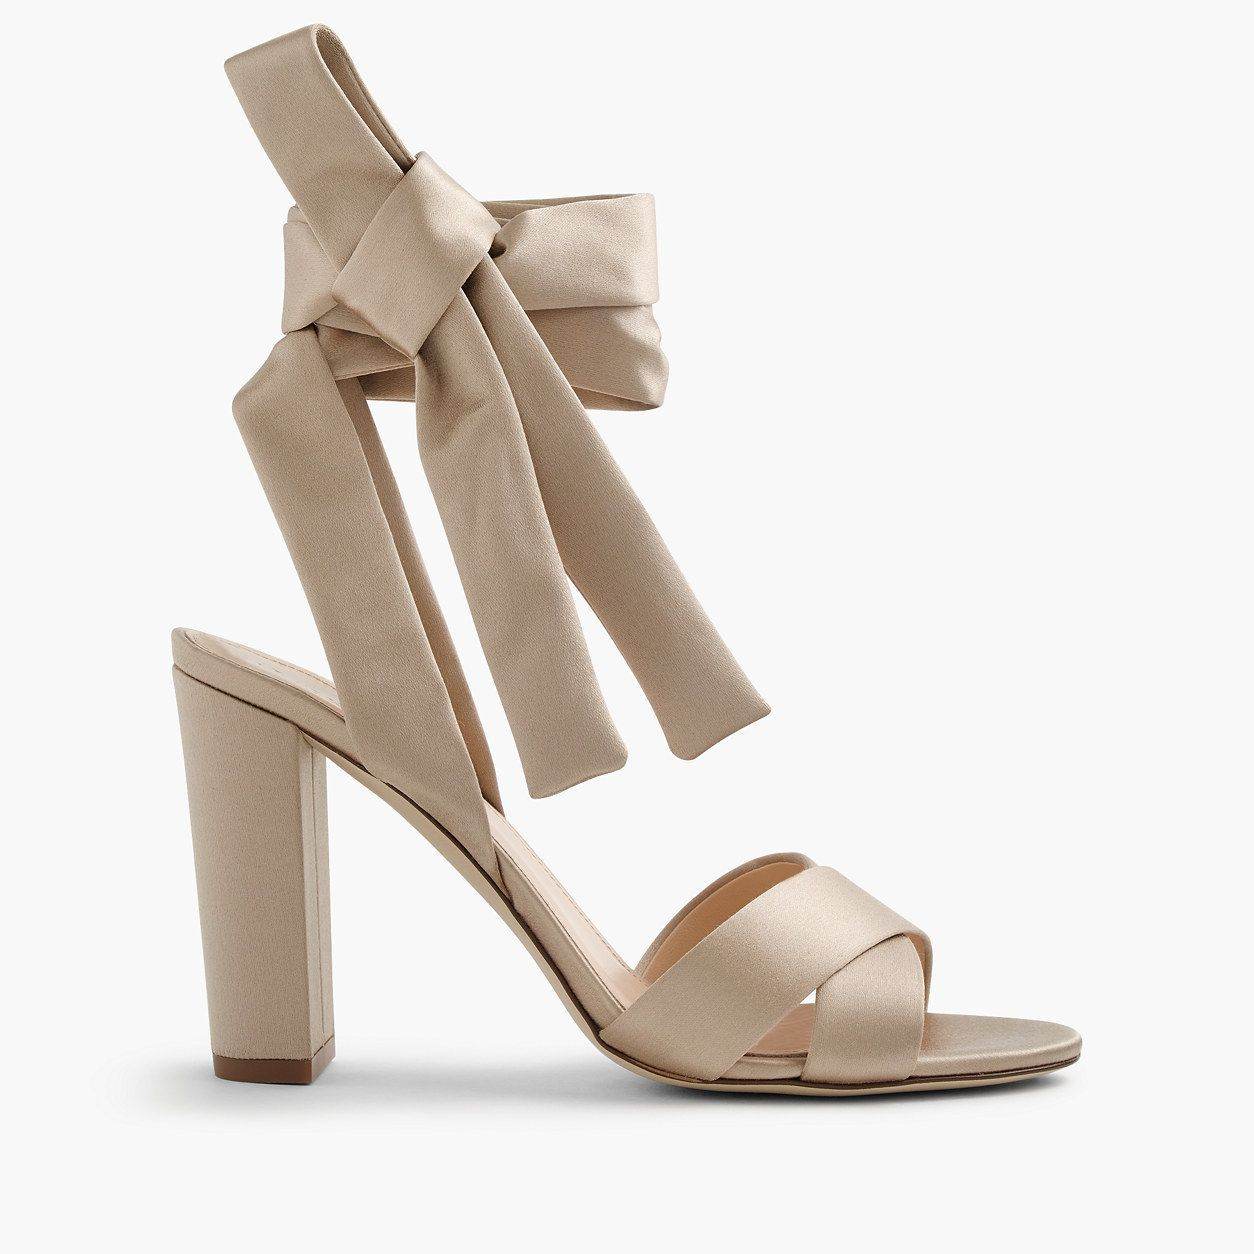 Wedding dress flats  JCrew Womens Satin Sandals With Ankle Wraps Size  M  shoe